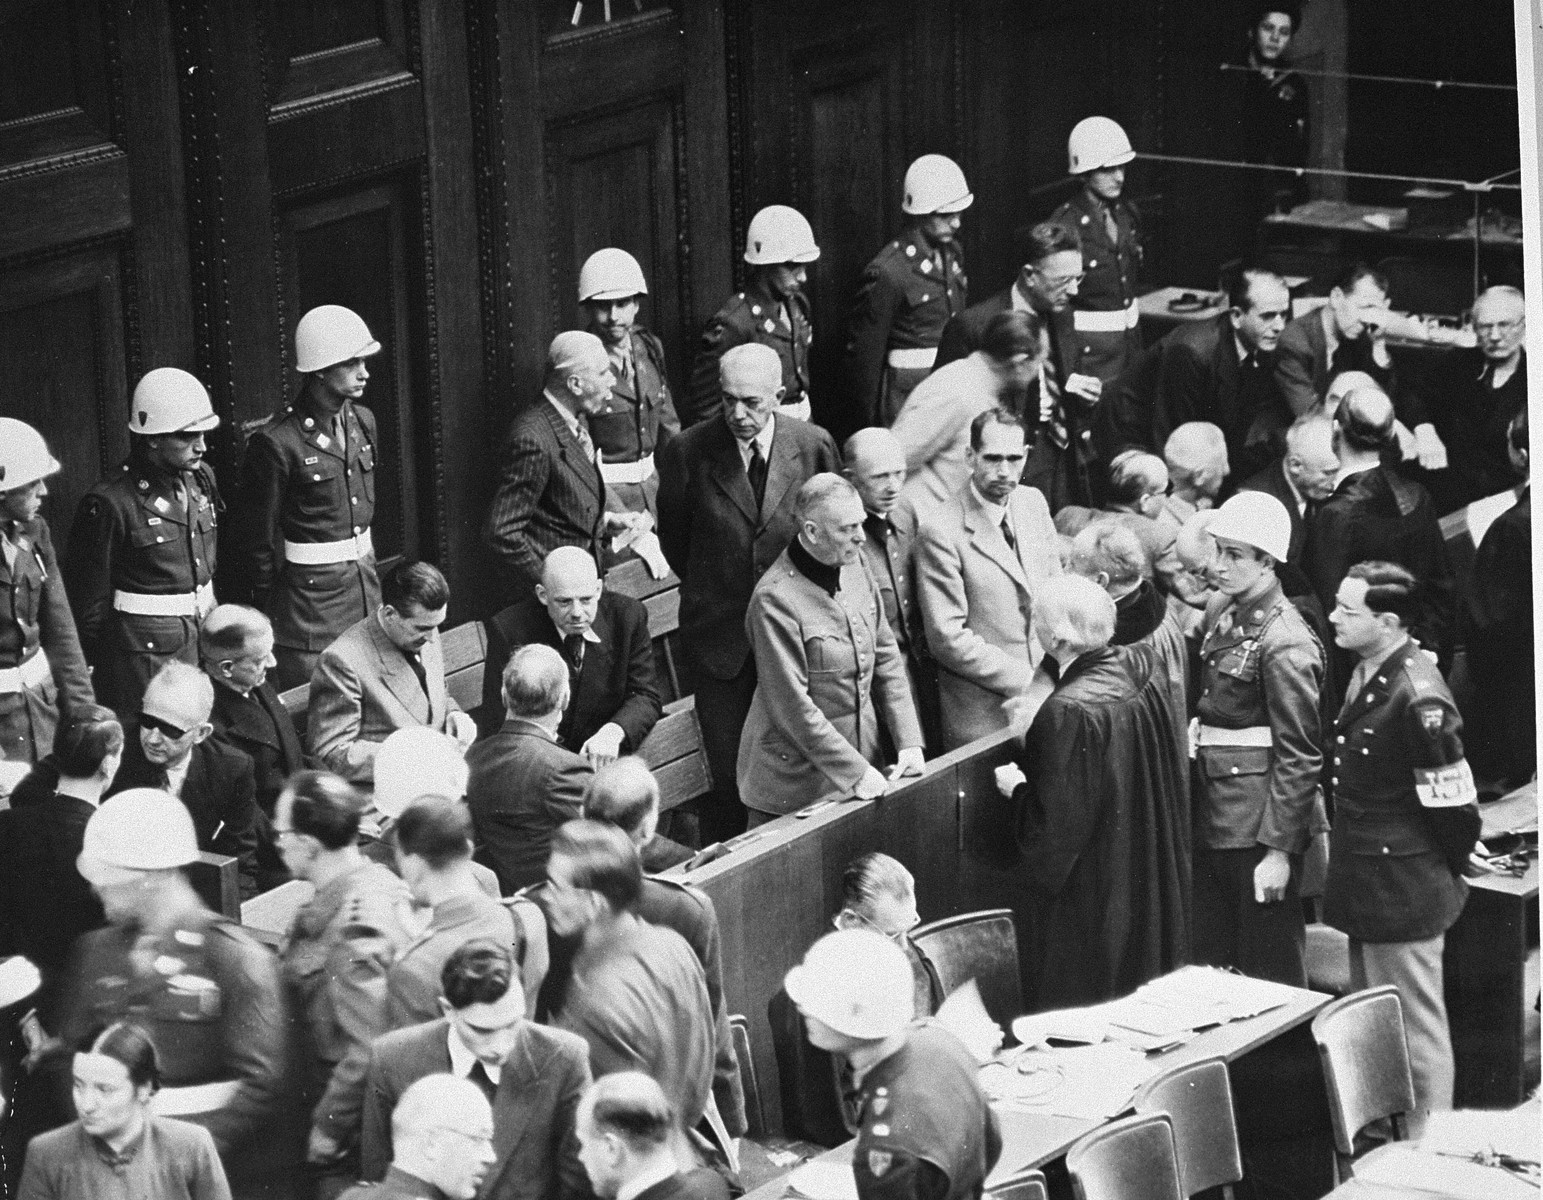 The defendants' dock during a recess at the International Military Tribunal trial of war criminals at Nuremberg.  Several of the defendants speak to their lawyers.